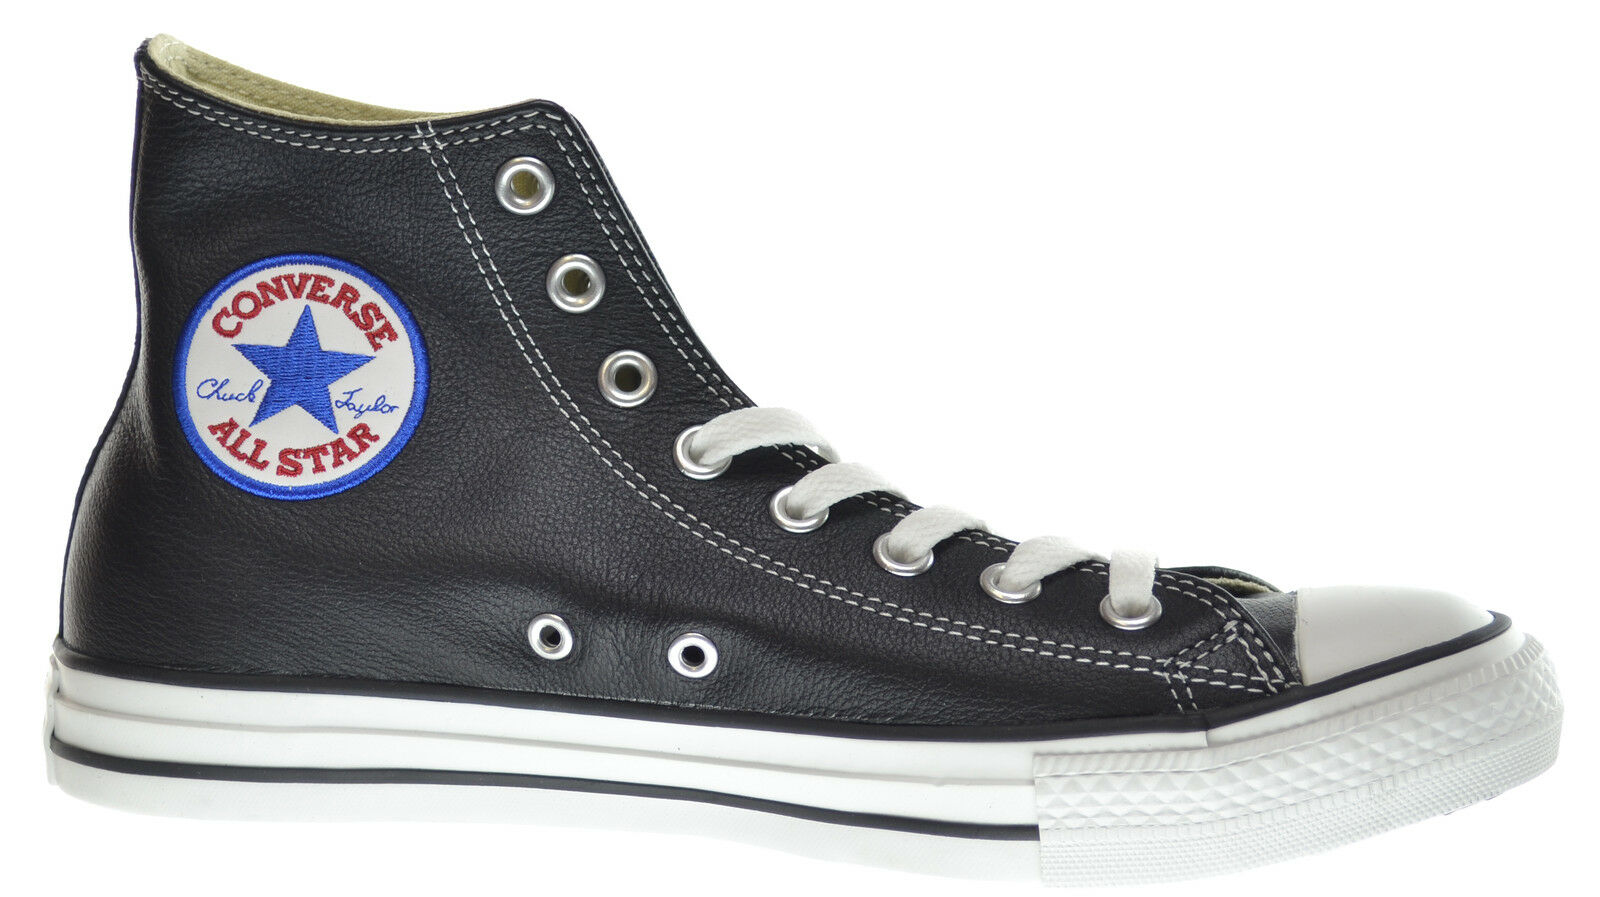 Converse Chuck Taylor Leather All Star Hi Men's Leather Taylor Sneakers Black 1s581 8535c2